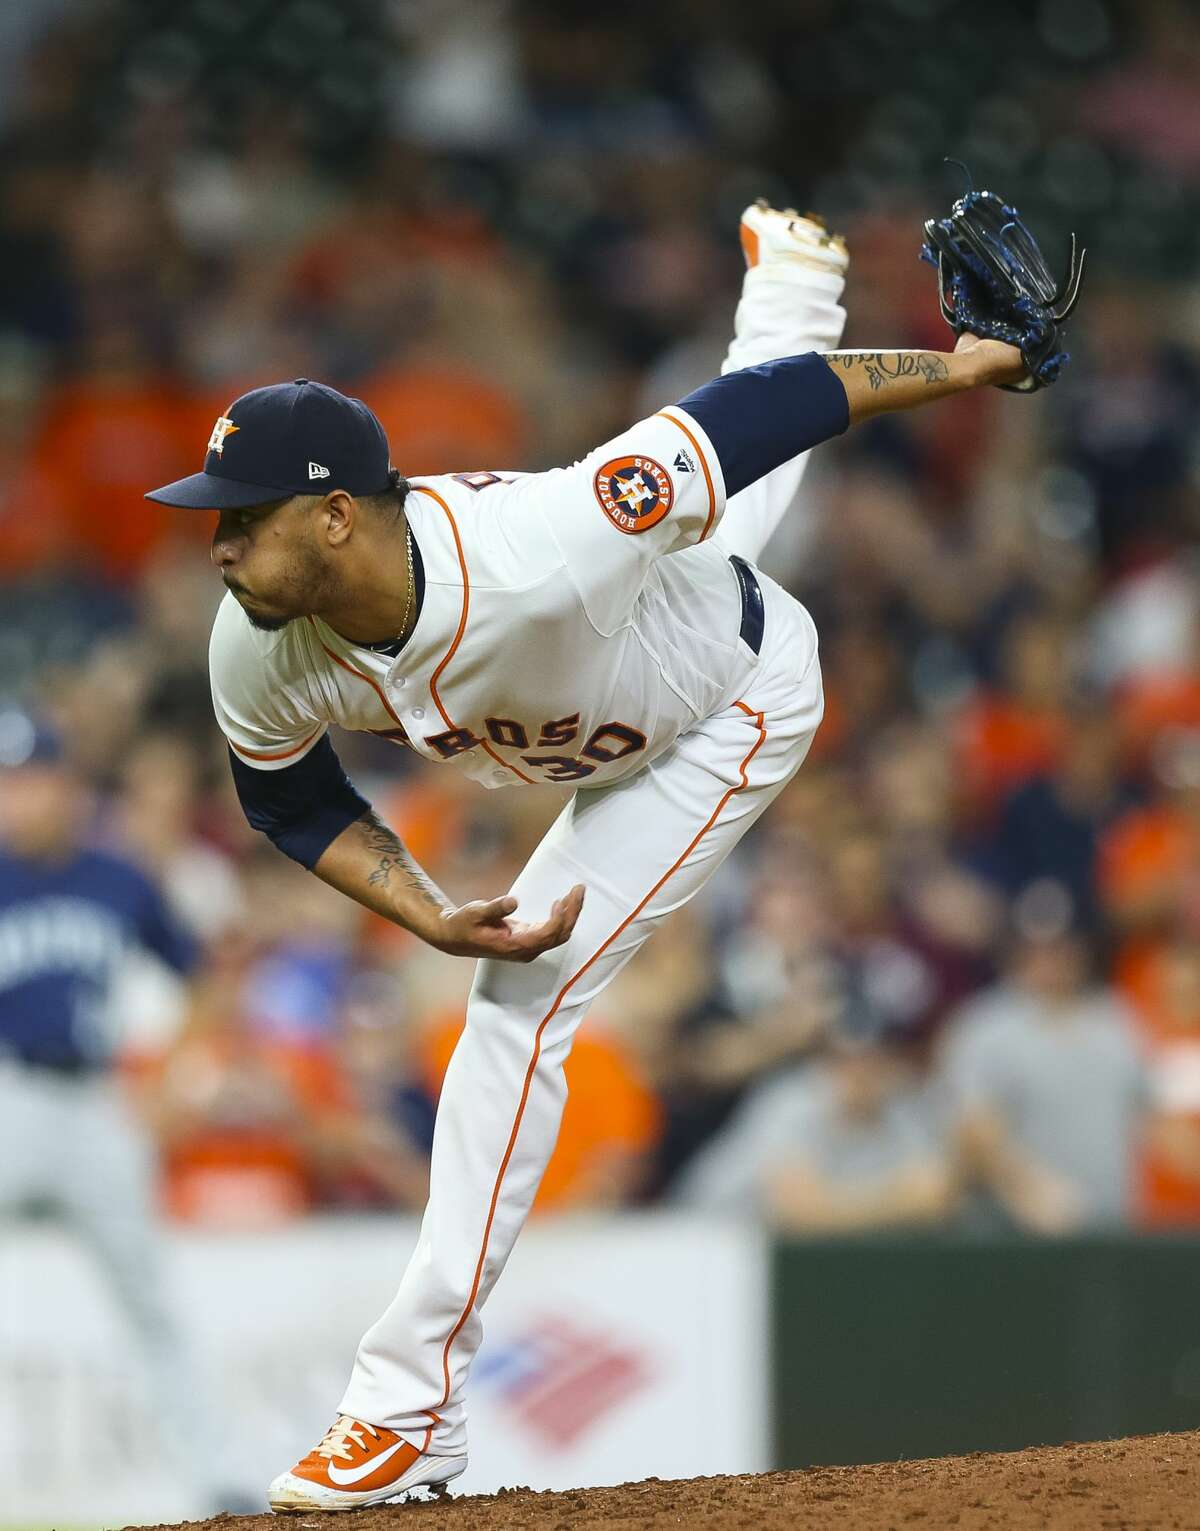 Houston Astros relief pitcher Hector Rondon (30) pitches during the ninth inning of a 7-5 win for the Astros at Minute Maid Park, Wednesday, June 6, 2018, in Houston. ( Mark Mulligan / Houston Chronicle )